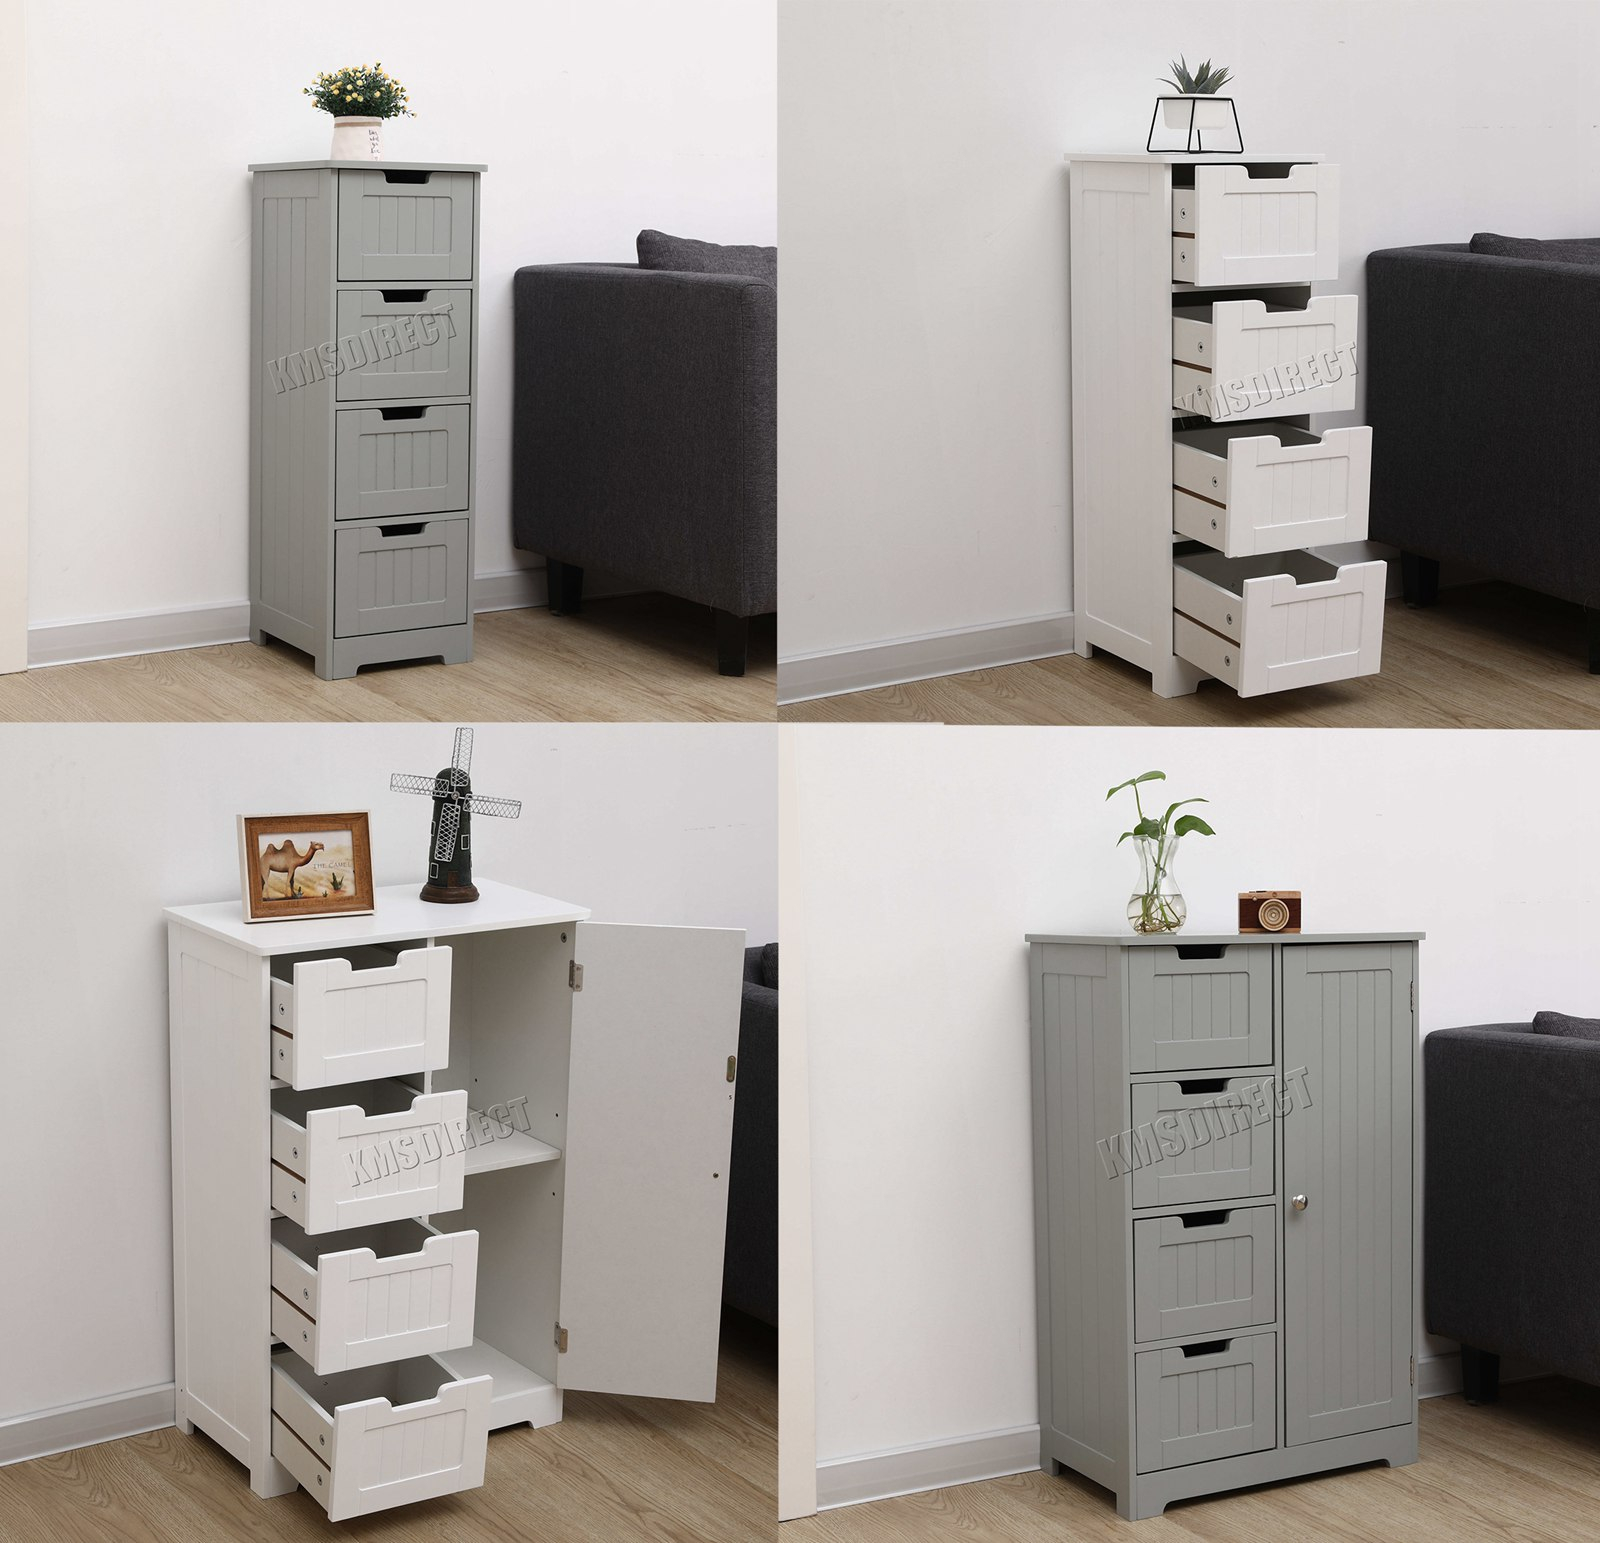 Details About Westwood Bathroom Storage Cabinet Wooden 4 Drawer Cupboard Free Standing Unit intended for proportions 1600 X 1543